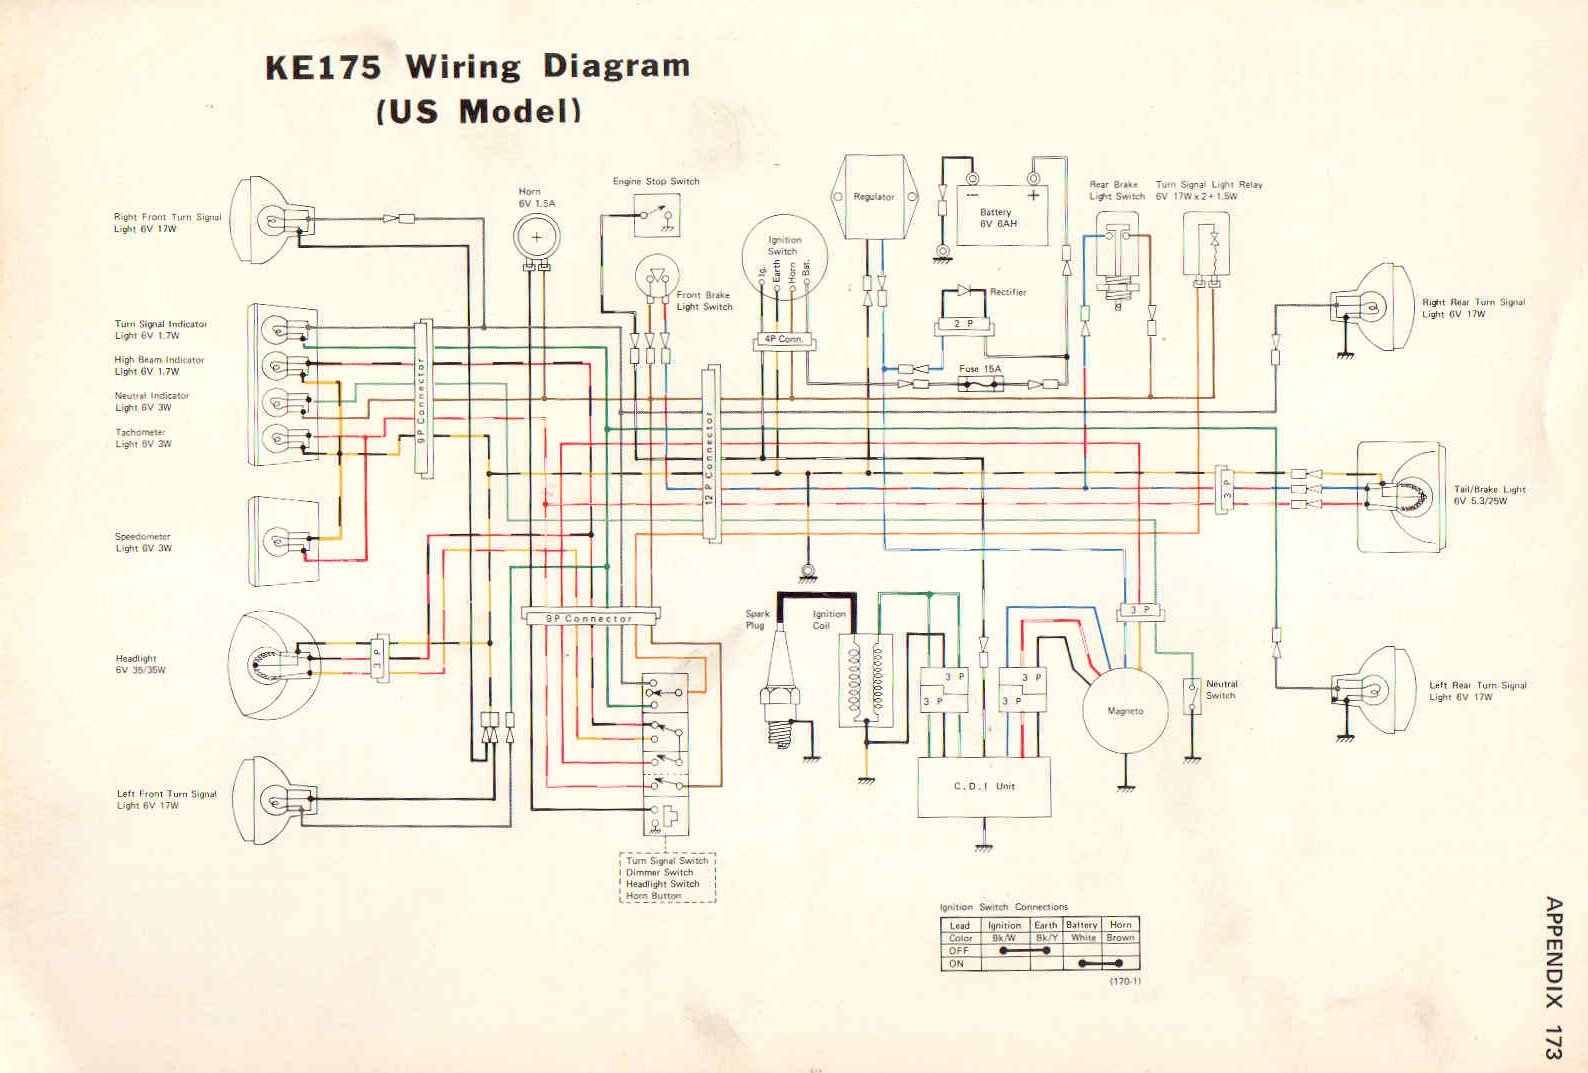 Ke100 Wiring Diagram - Data wiring diagram gota wiring diagram